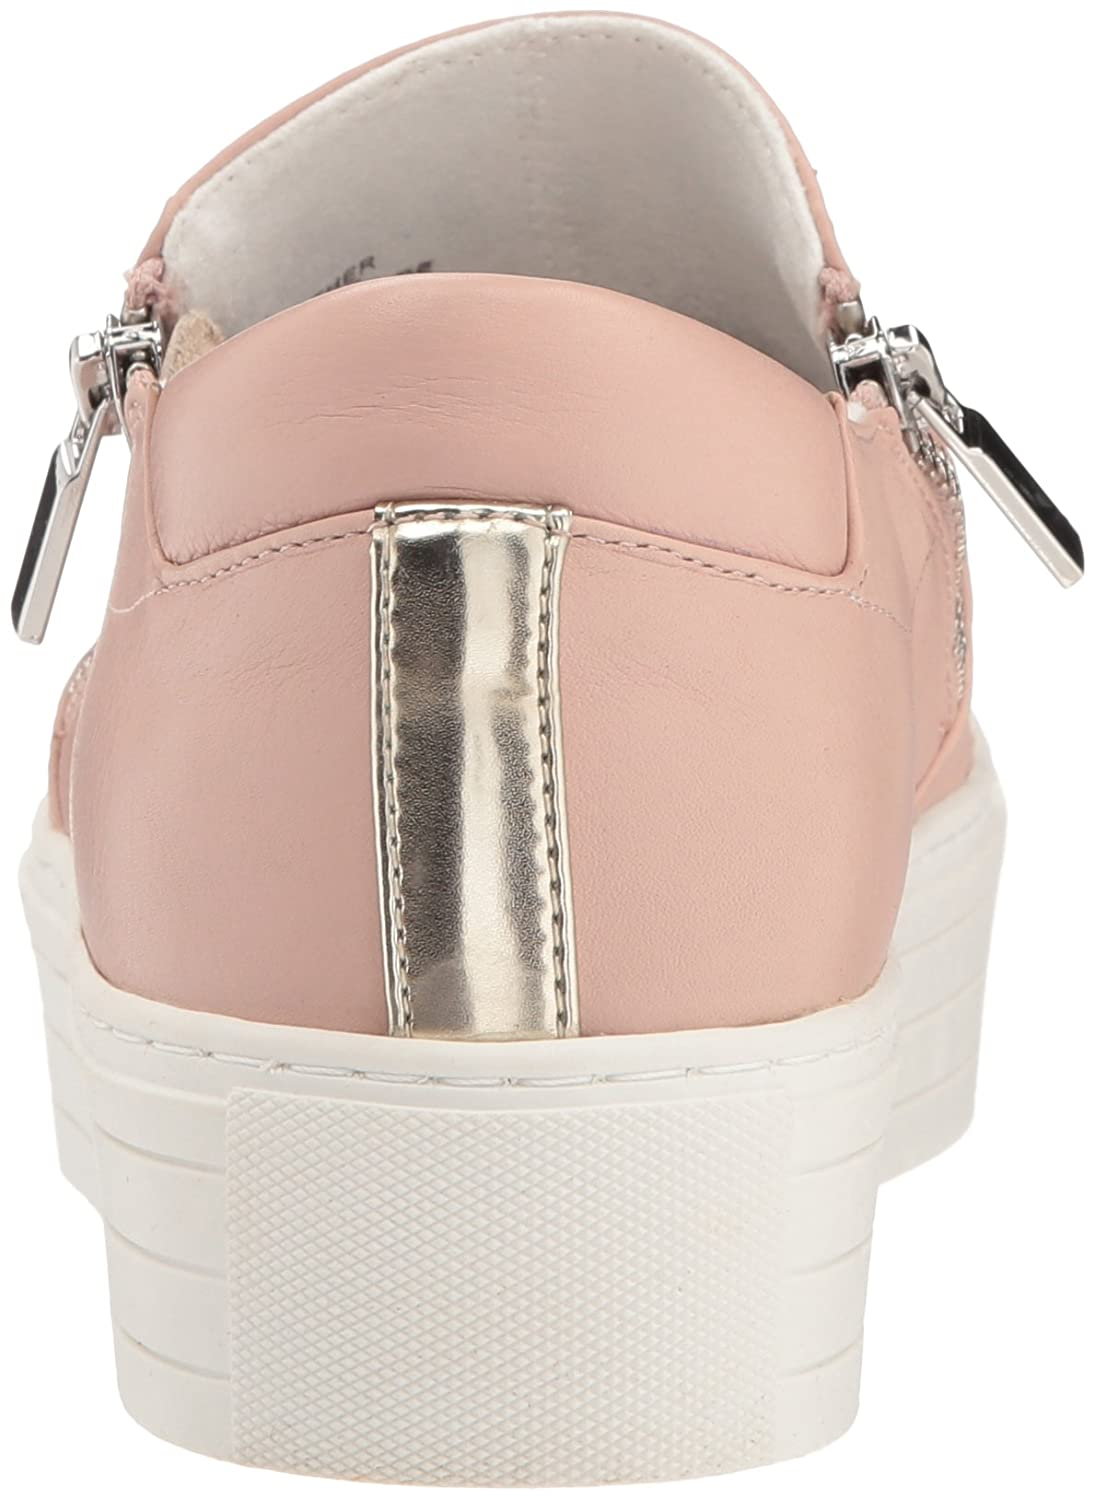 Kenneth Cole New York Women's Juneau Platform Dual Side Zippers Sneaker B077QJ3FN9 7 B(M) US|Rose